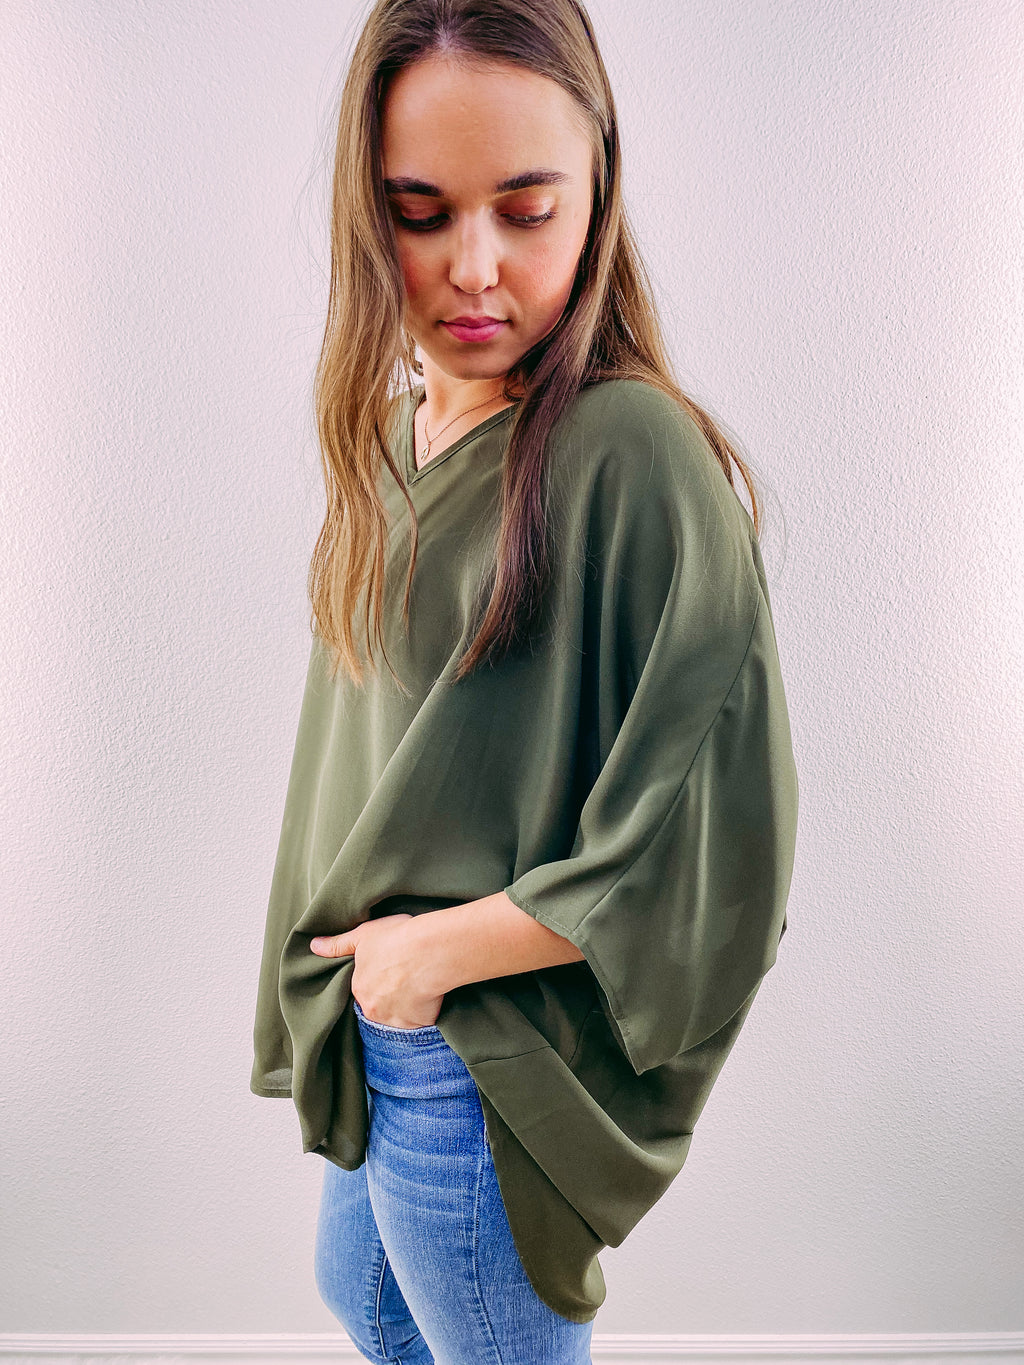 Racheal Oversized Blouse - olive